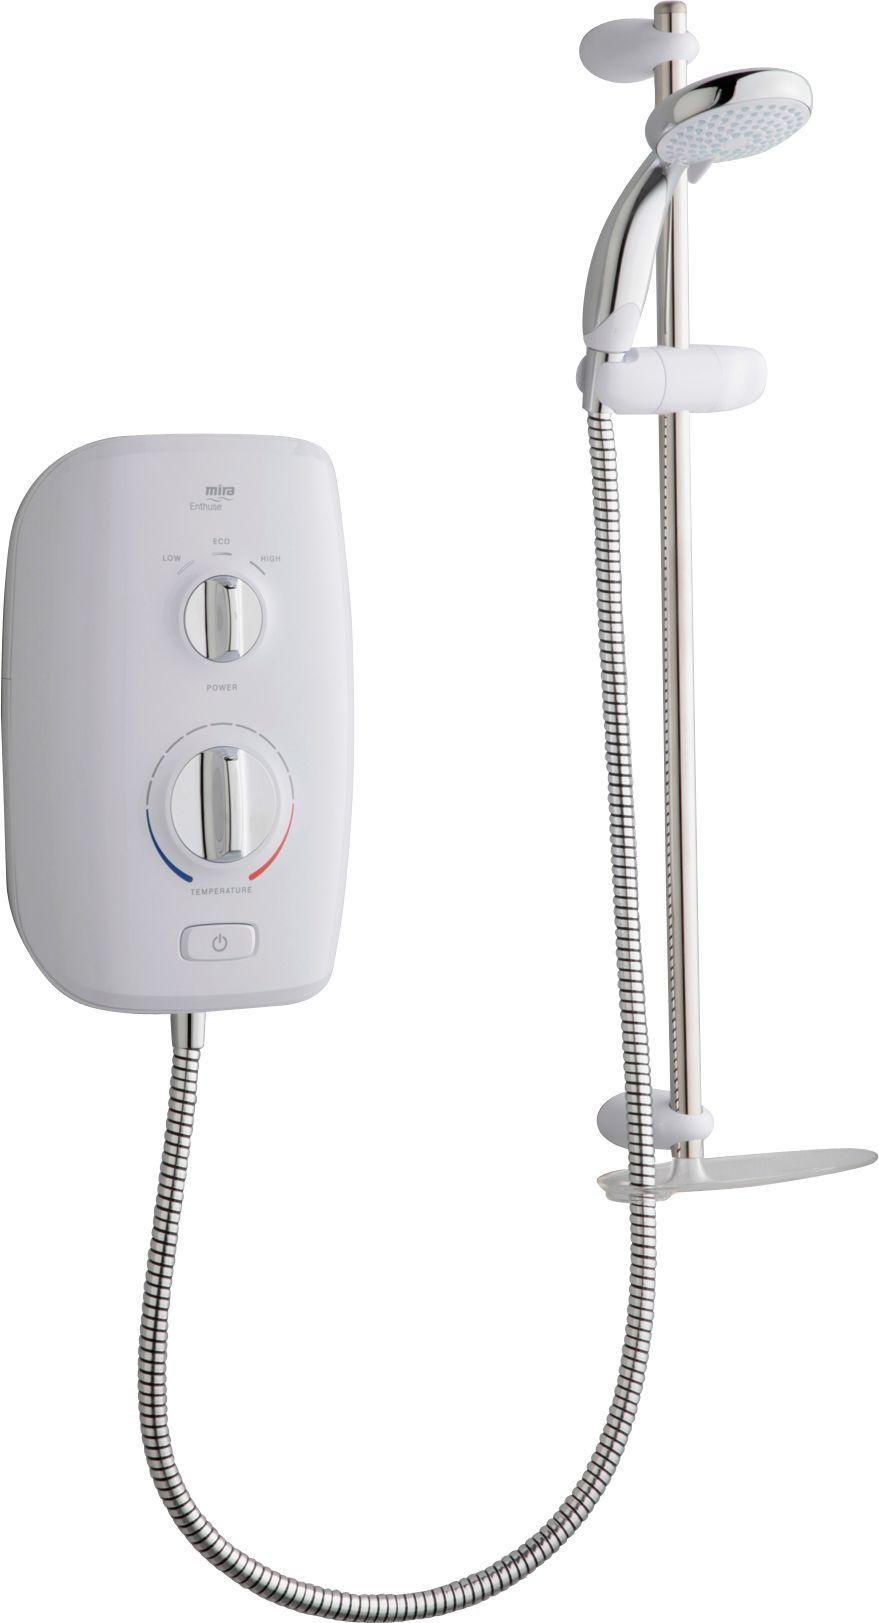 mira-enthuse-95kw-electric-shower